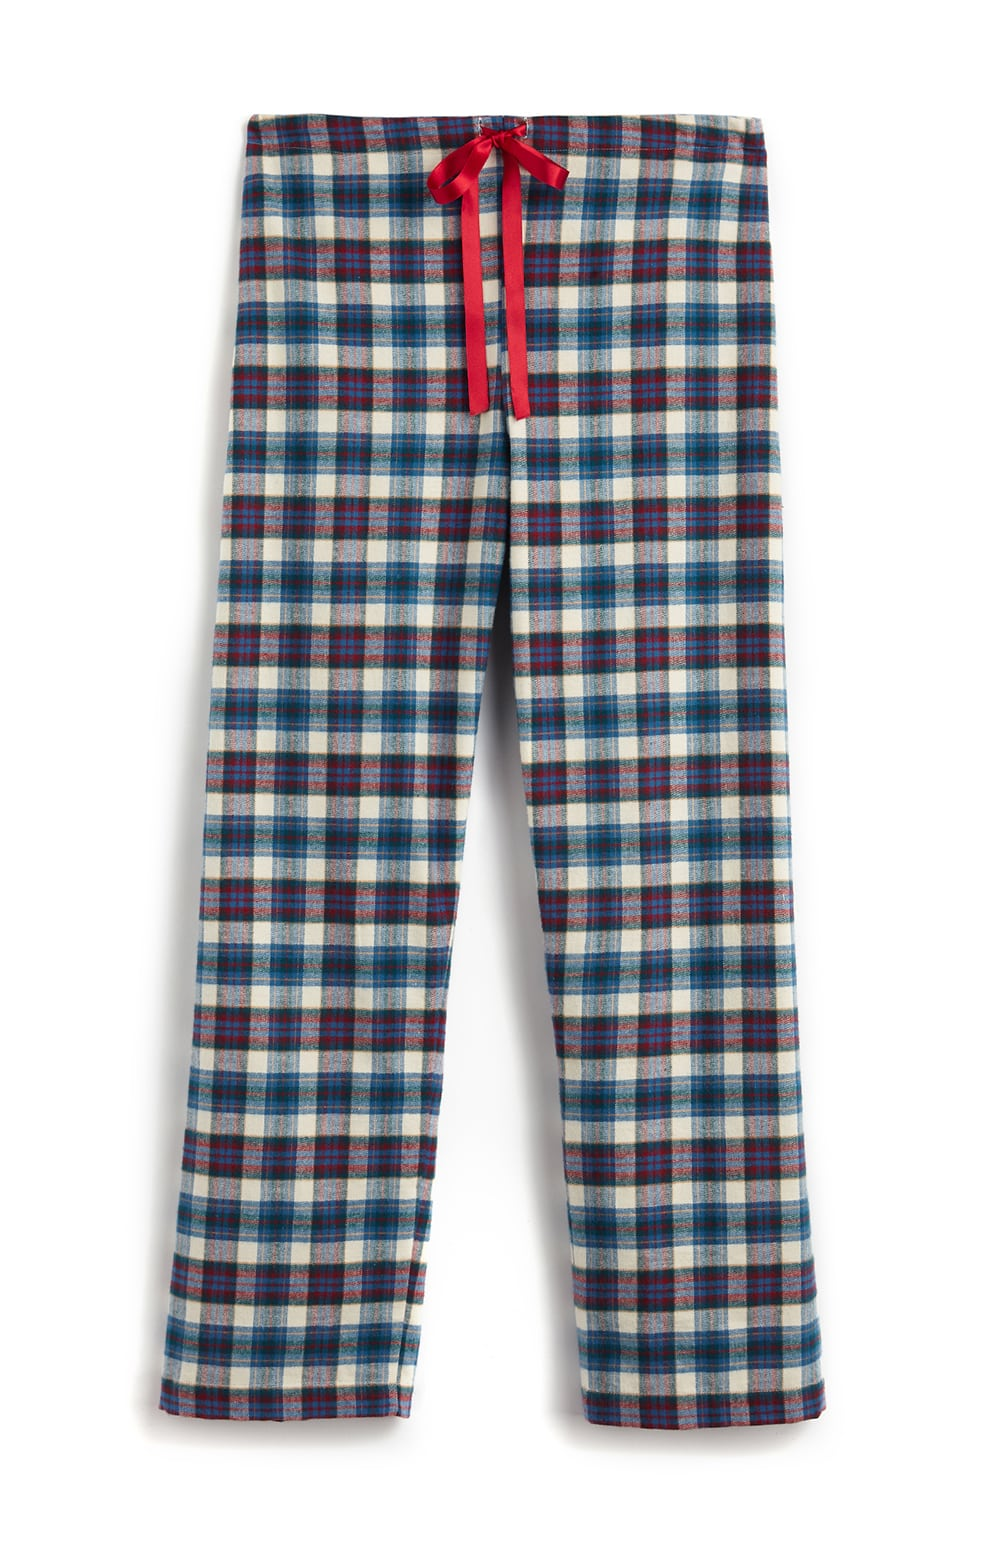 Brushed Tartan Pyjama Trousers (tltf) - Lulworth | Bonsoir of London